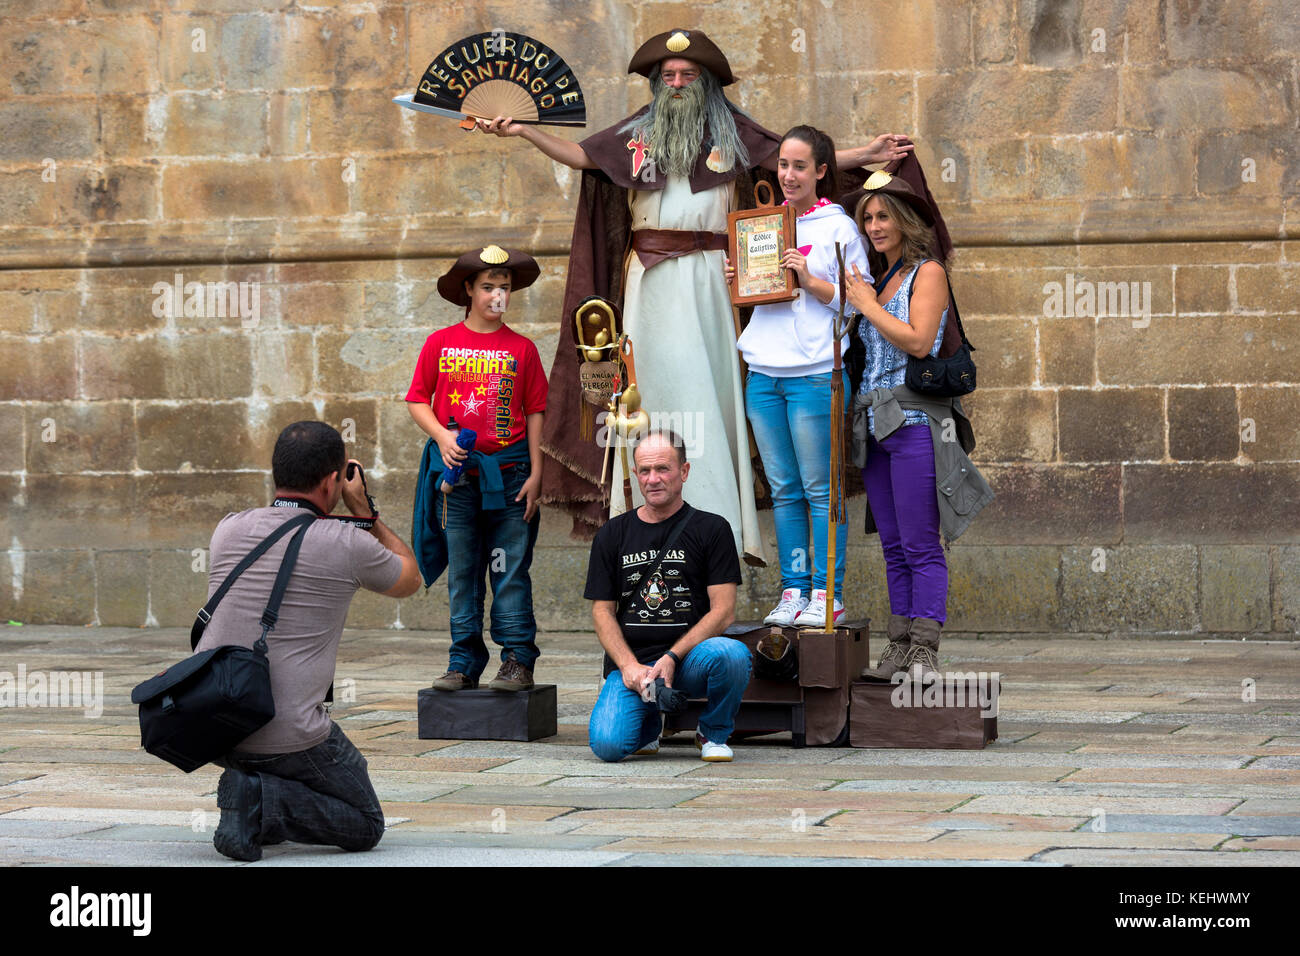 santiago de compostela black dating site Classic french way - full camino this is the iconic camino de santiago route, extending 480 miles / 770 km, from the french pyrenees to santiago de compostela.